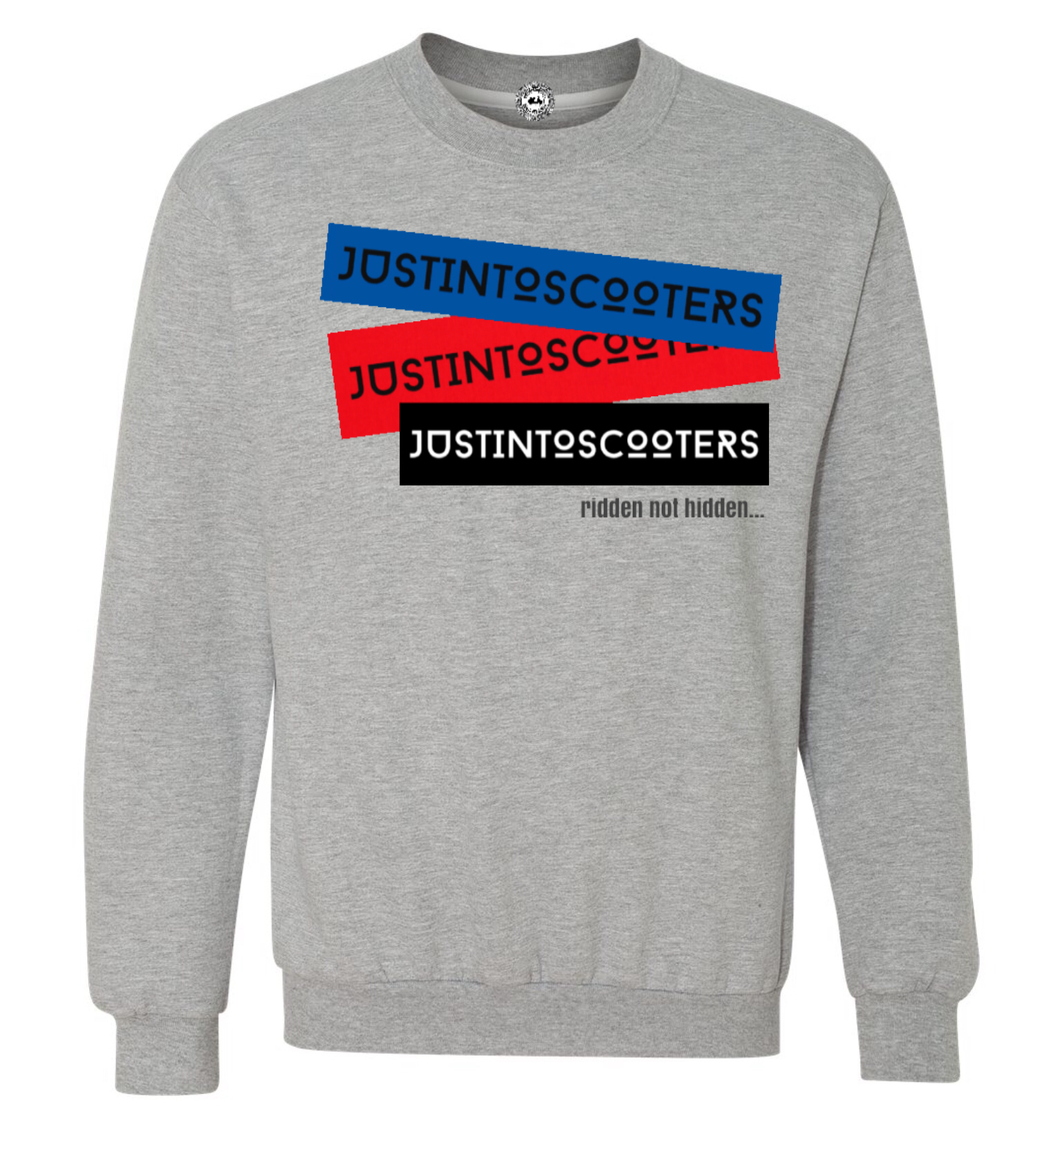 JUSTINTOSCOOTERS COLOURS SWEATSHIRT